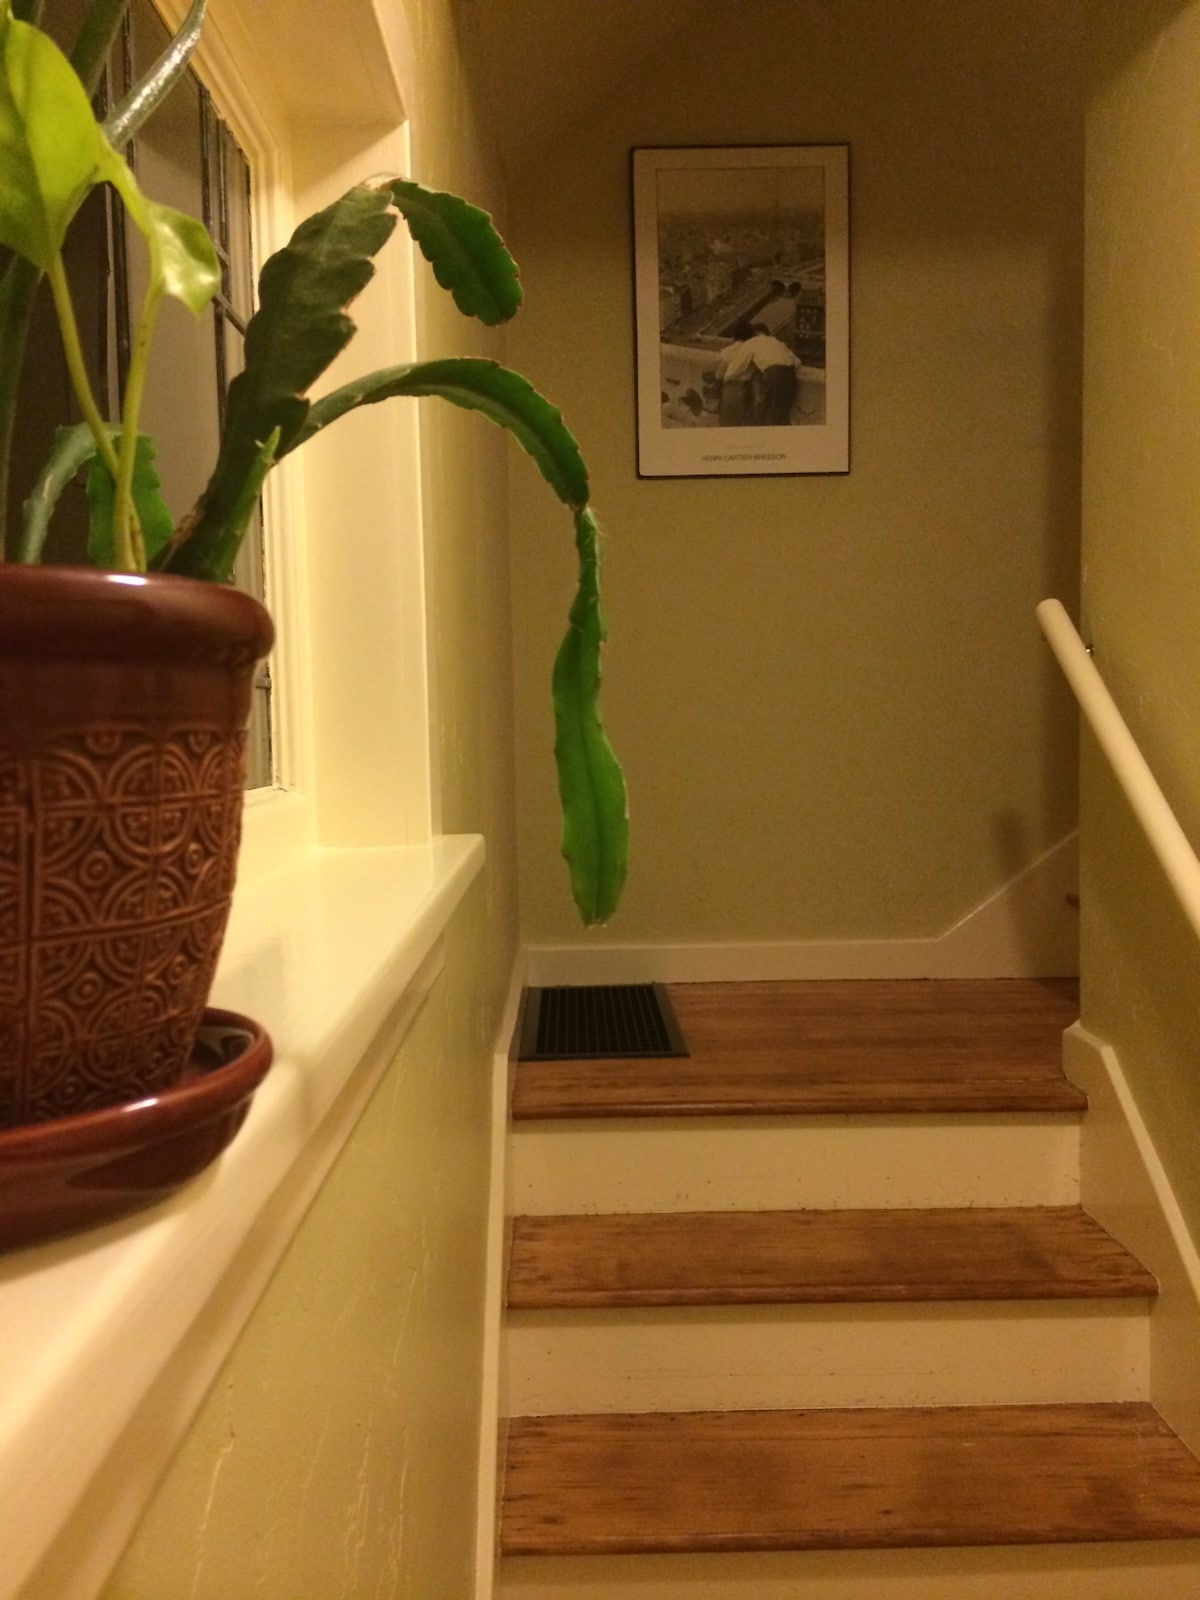 This is the entry way that leads to the second floor rooms.